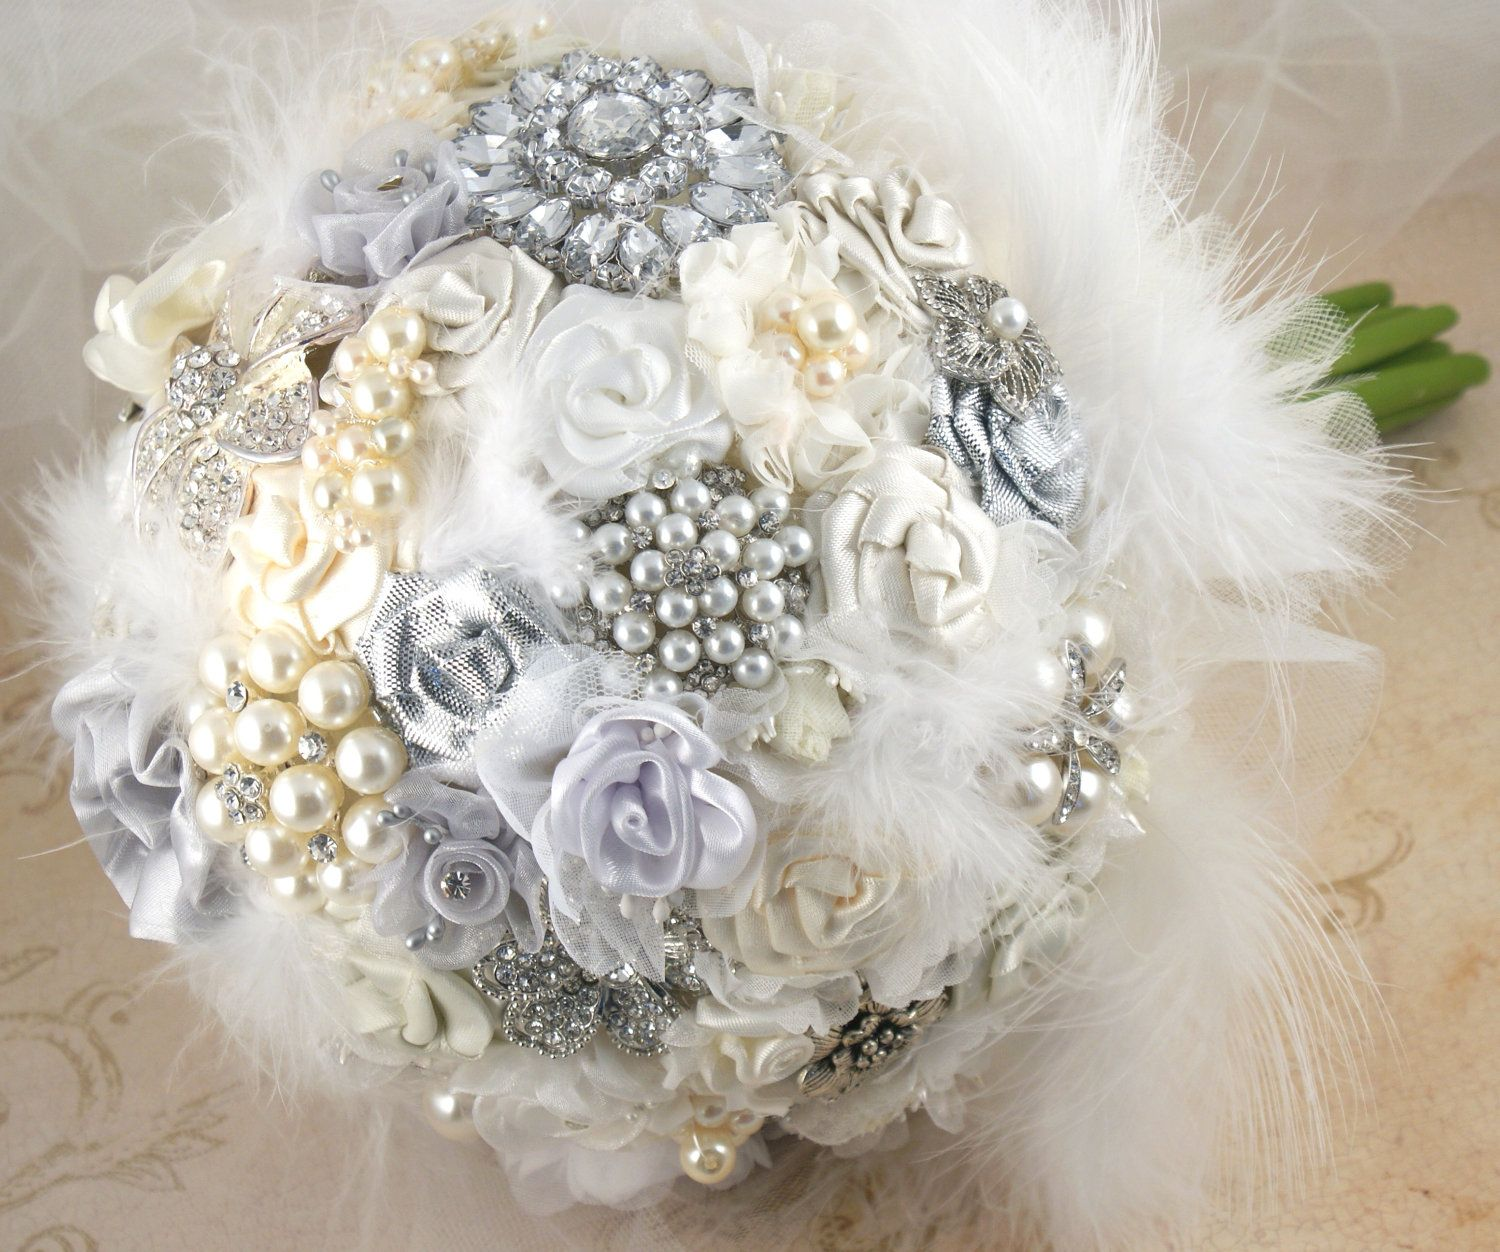 Brooch Bouquet Bridal Wedding Bouquet Jeweled Bouquet In White